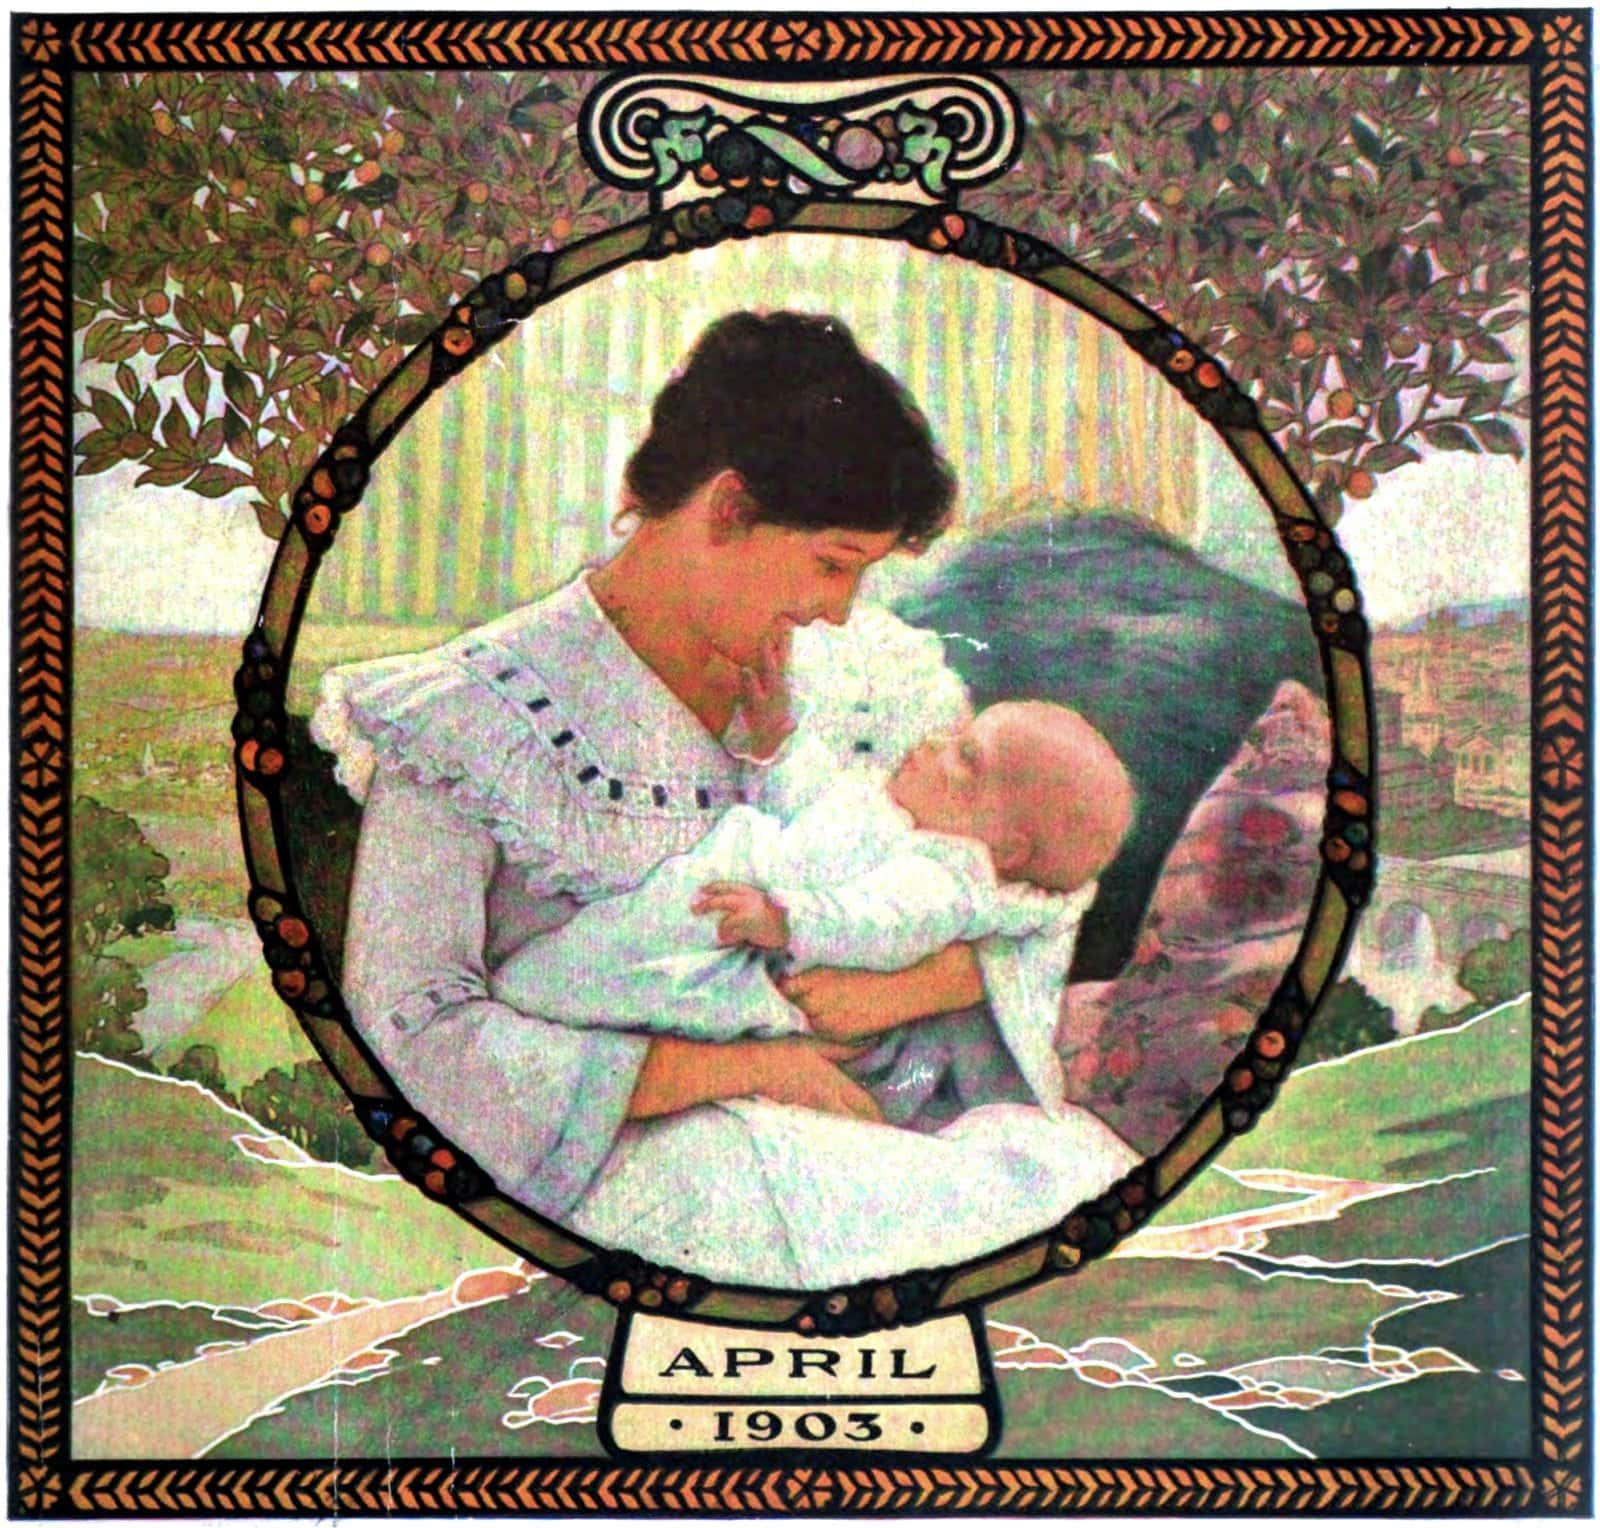 Mother and baby in 1903